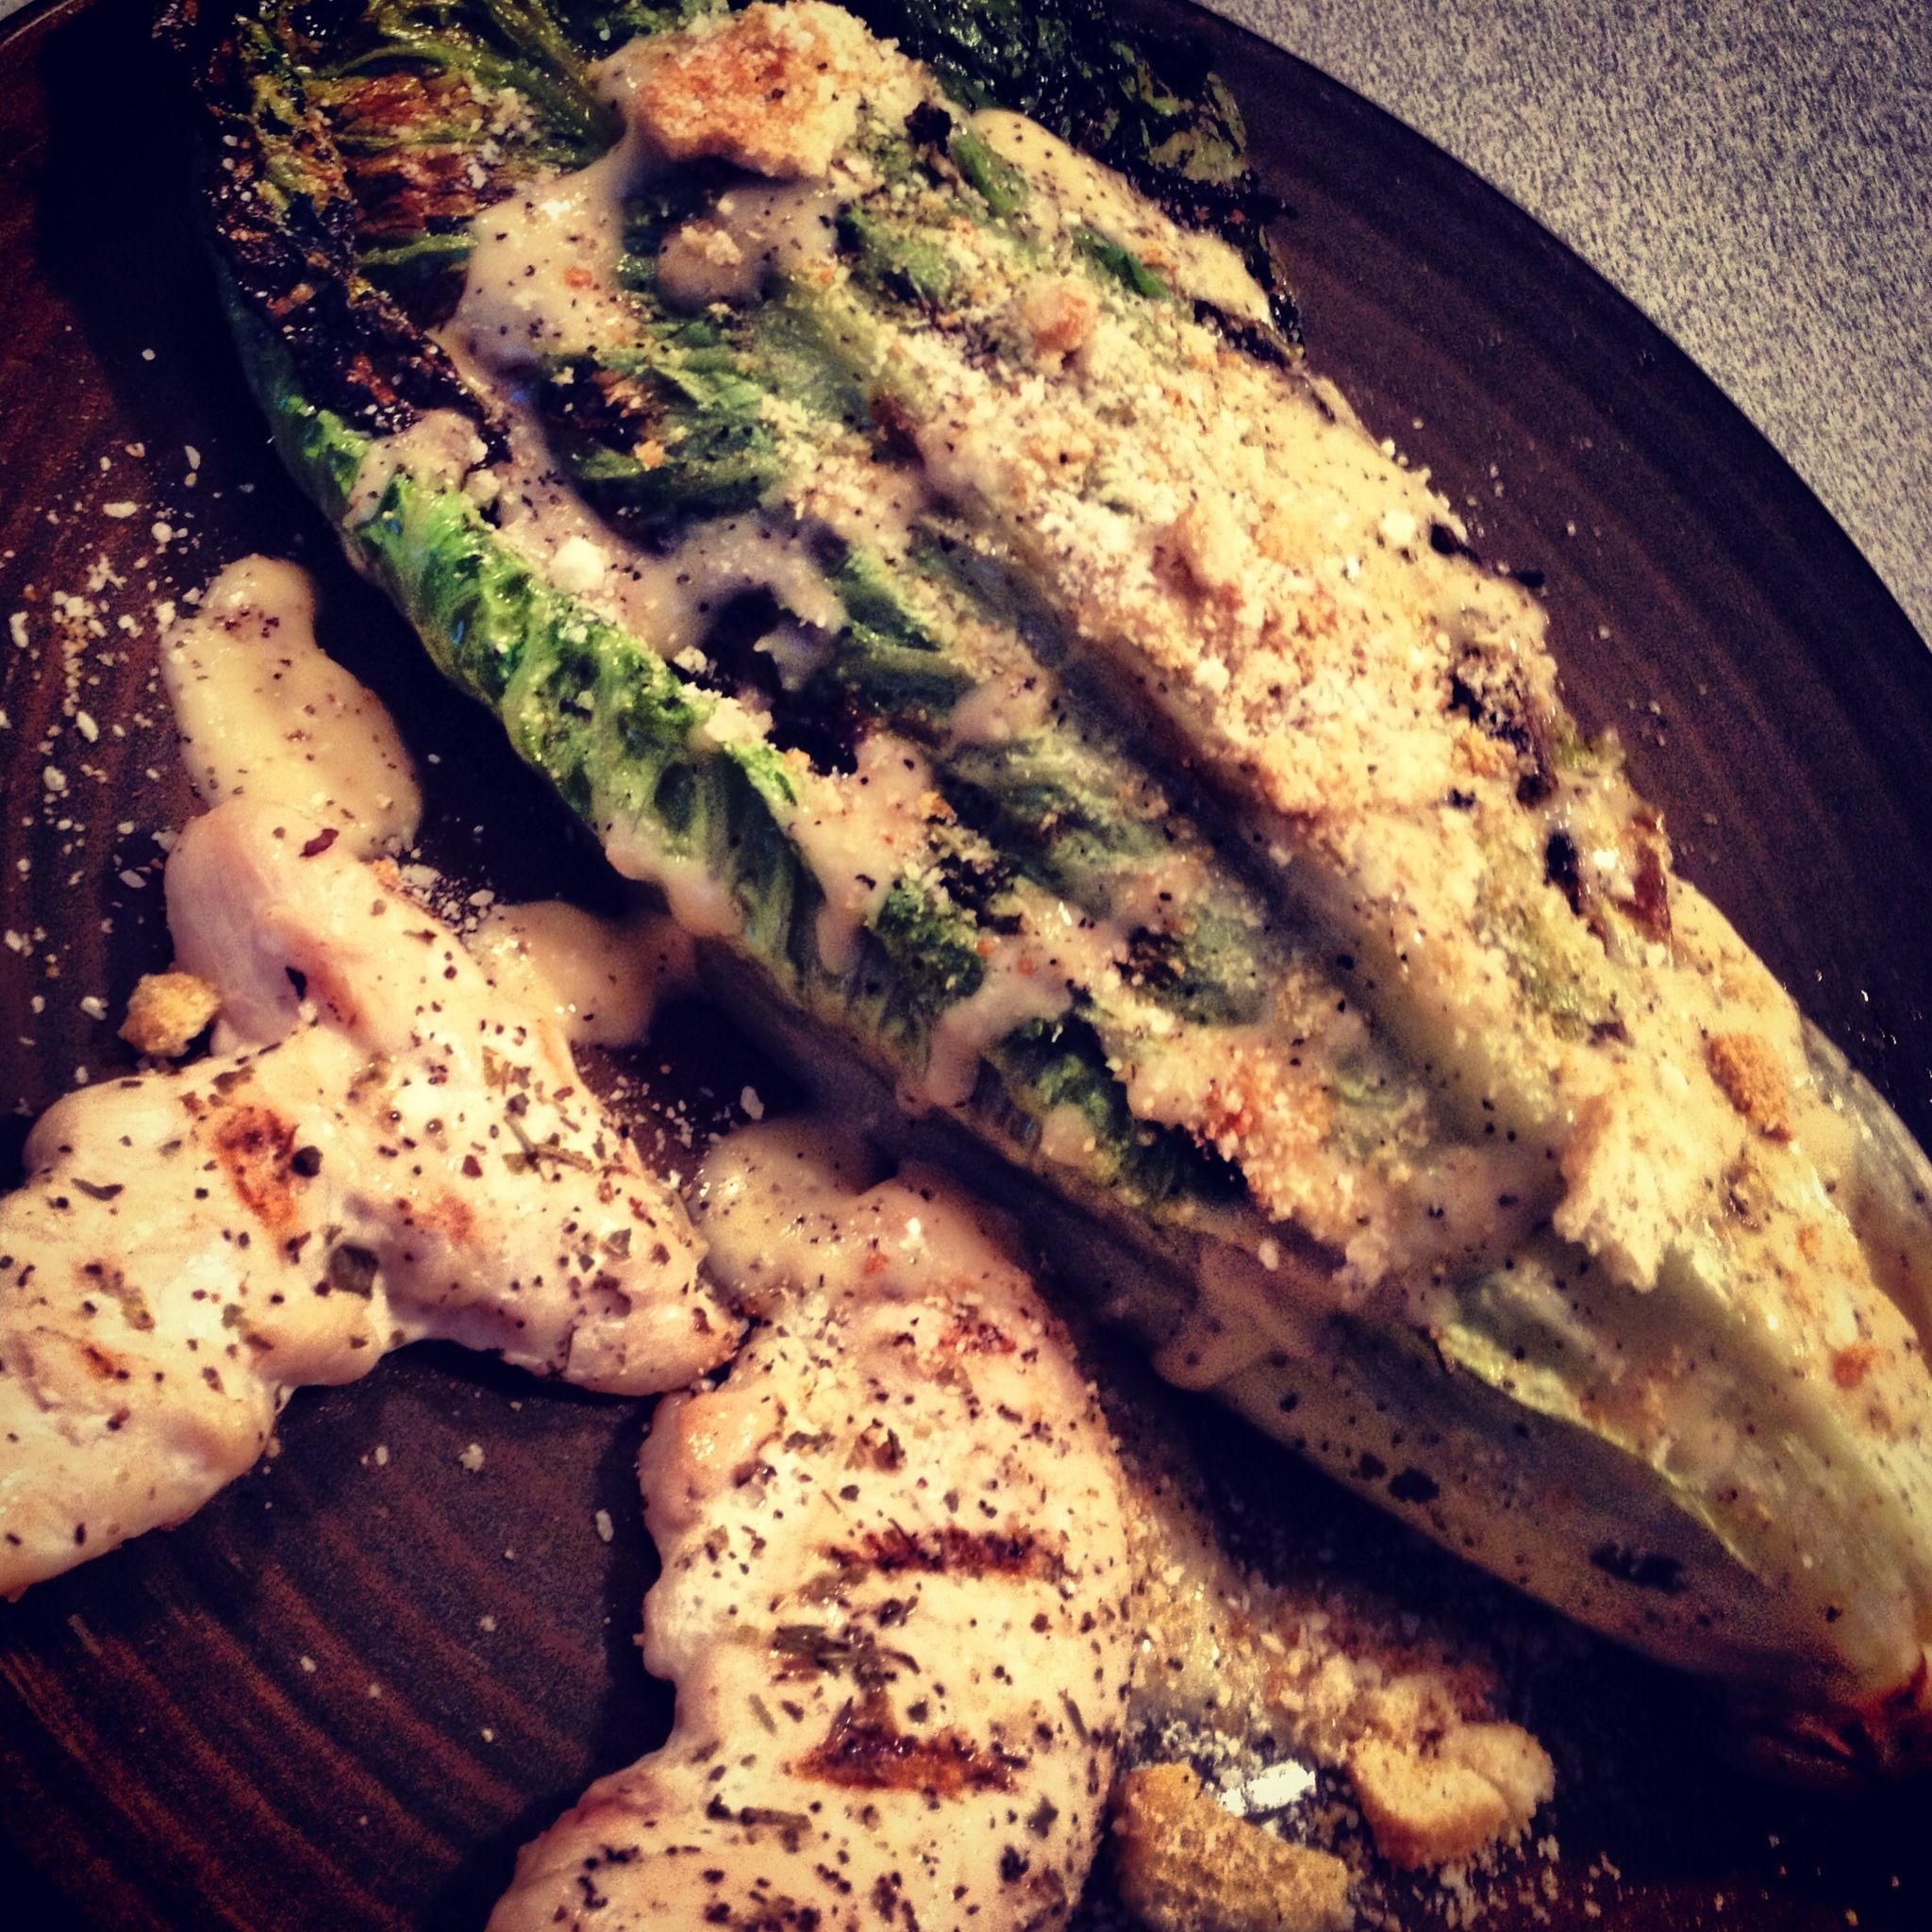 Grilled romaine Caesar salad with grilled chicken.